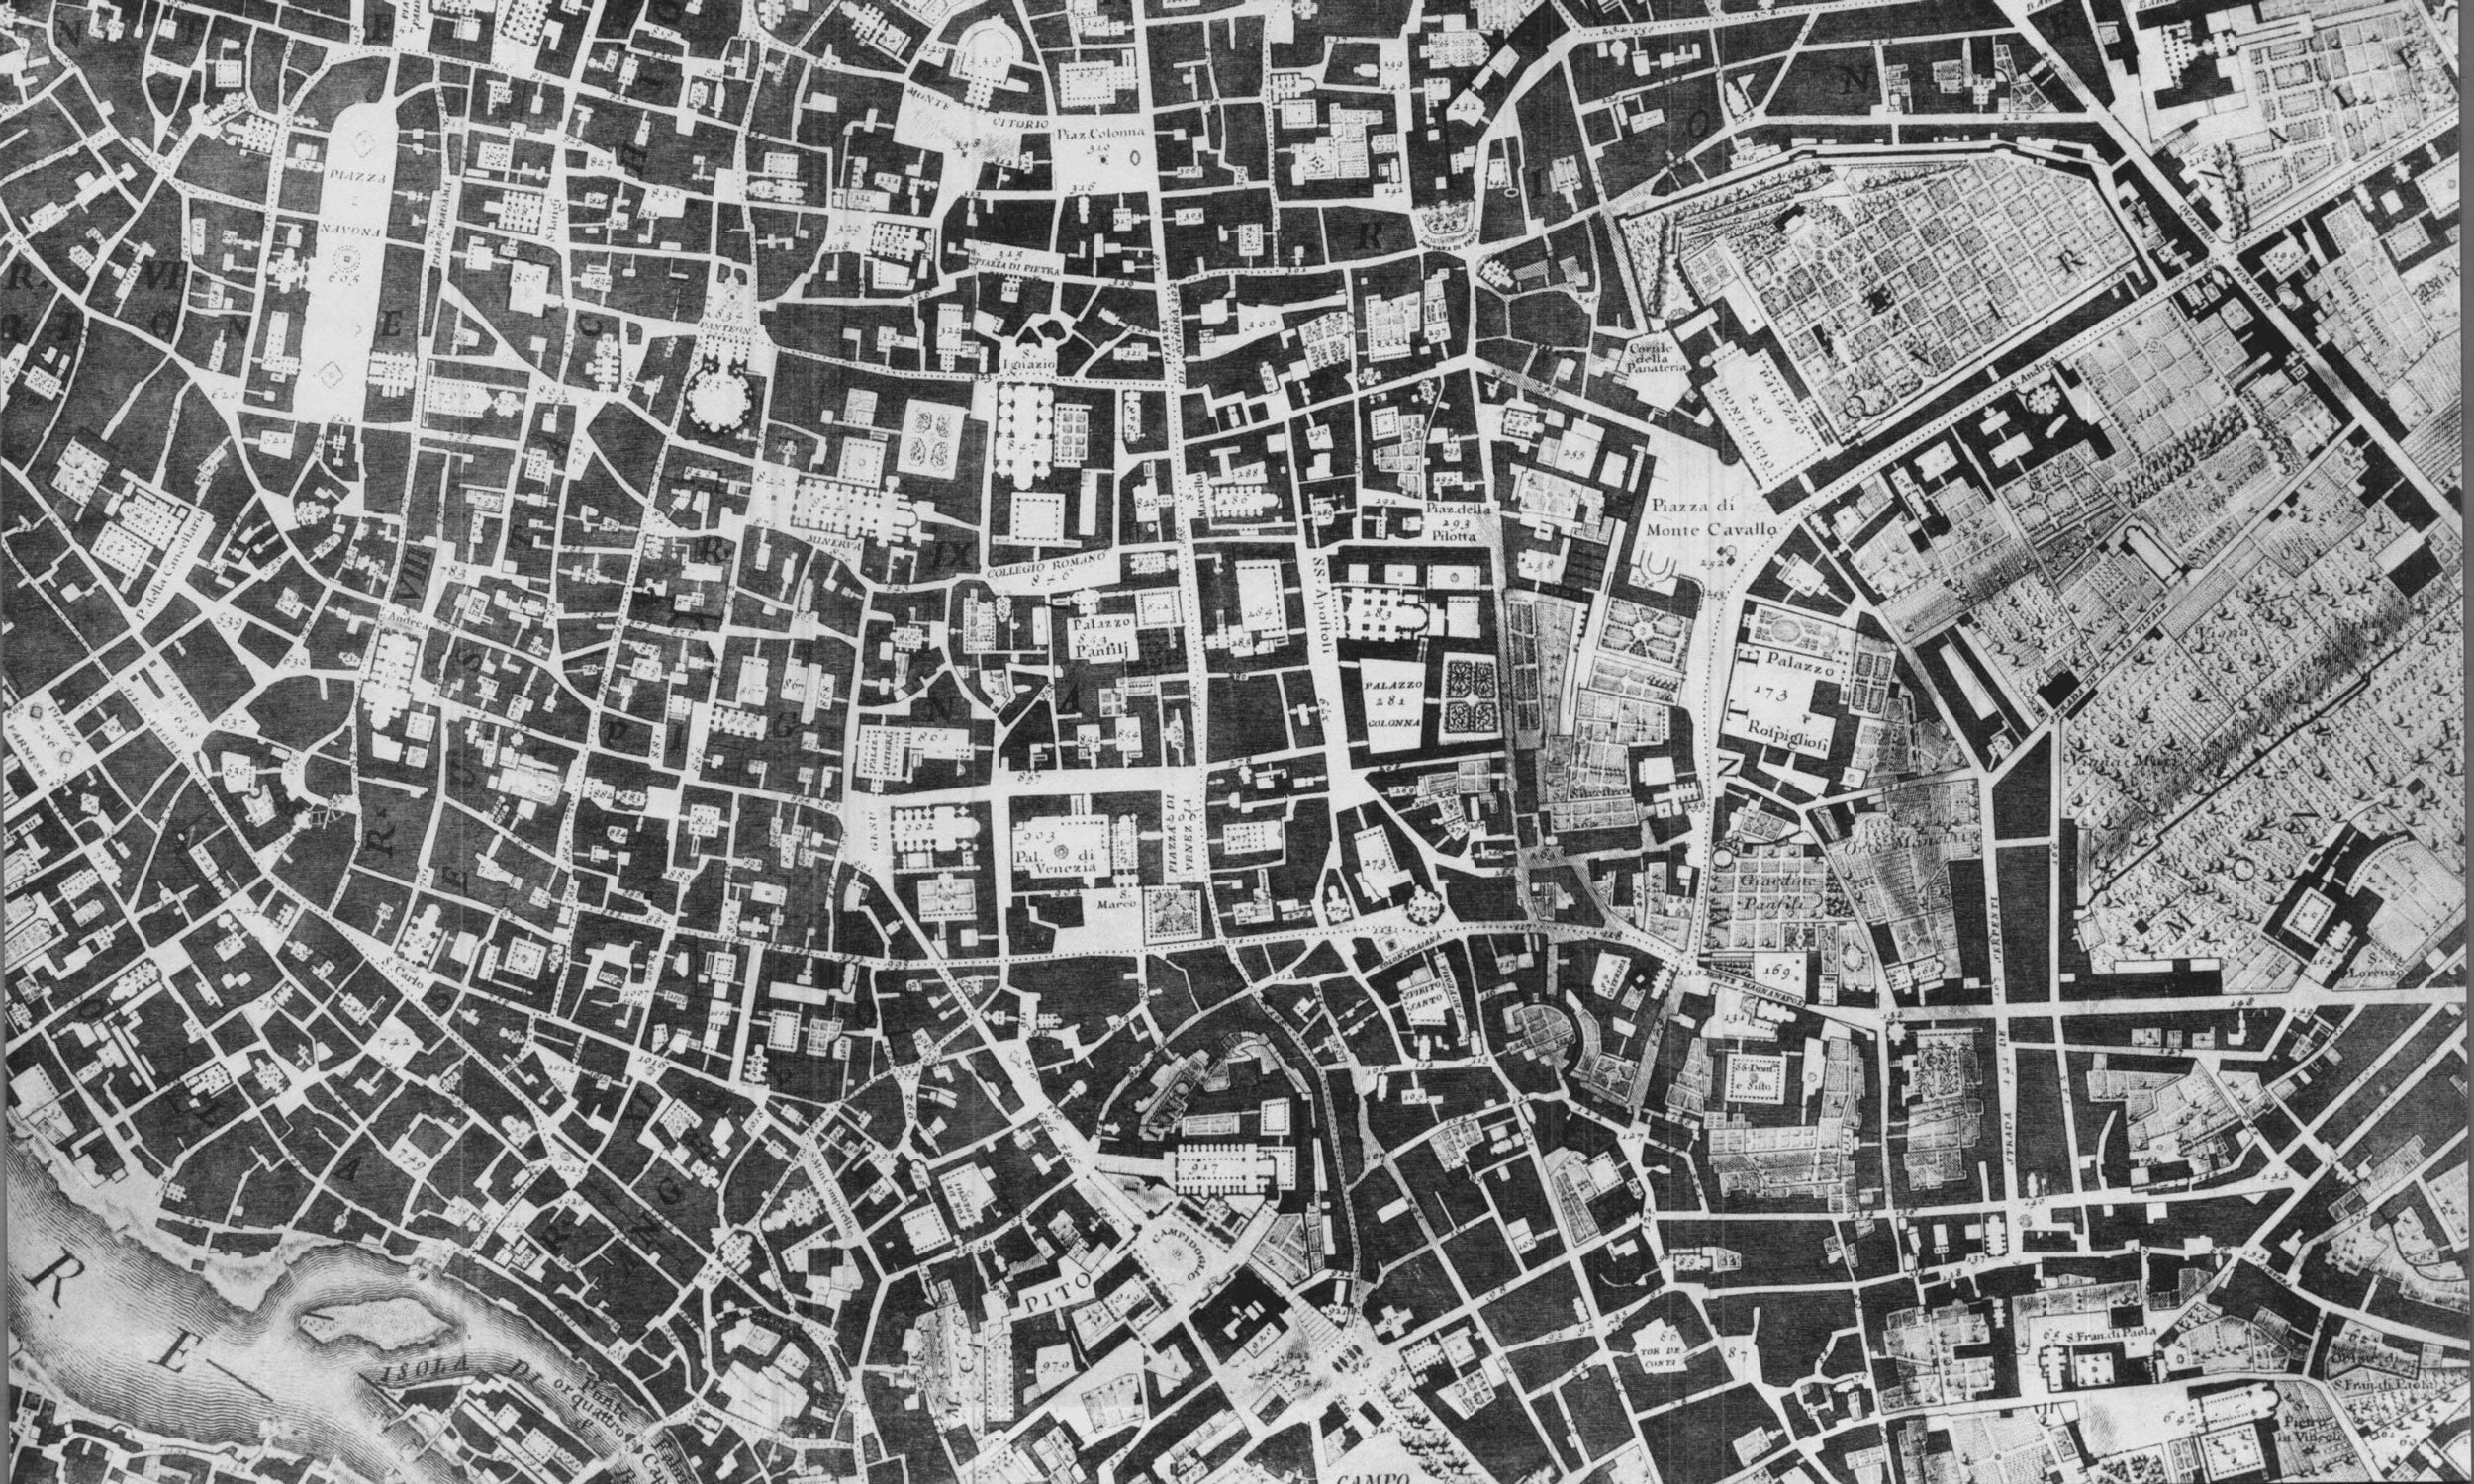 Nolli's map for rome, 1748